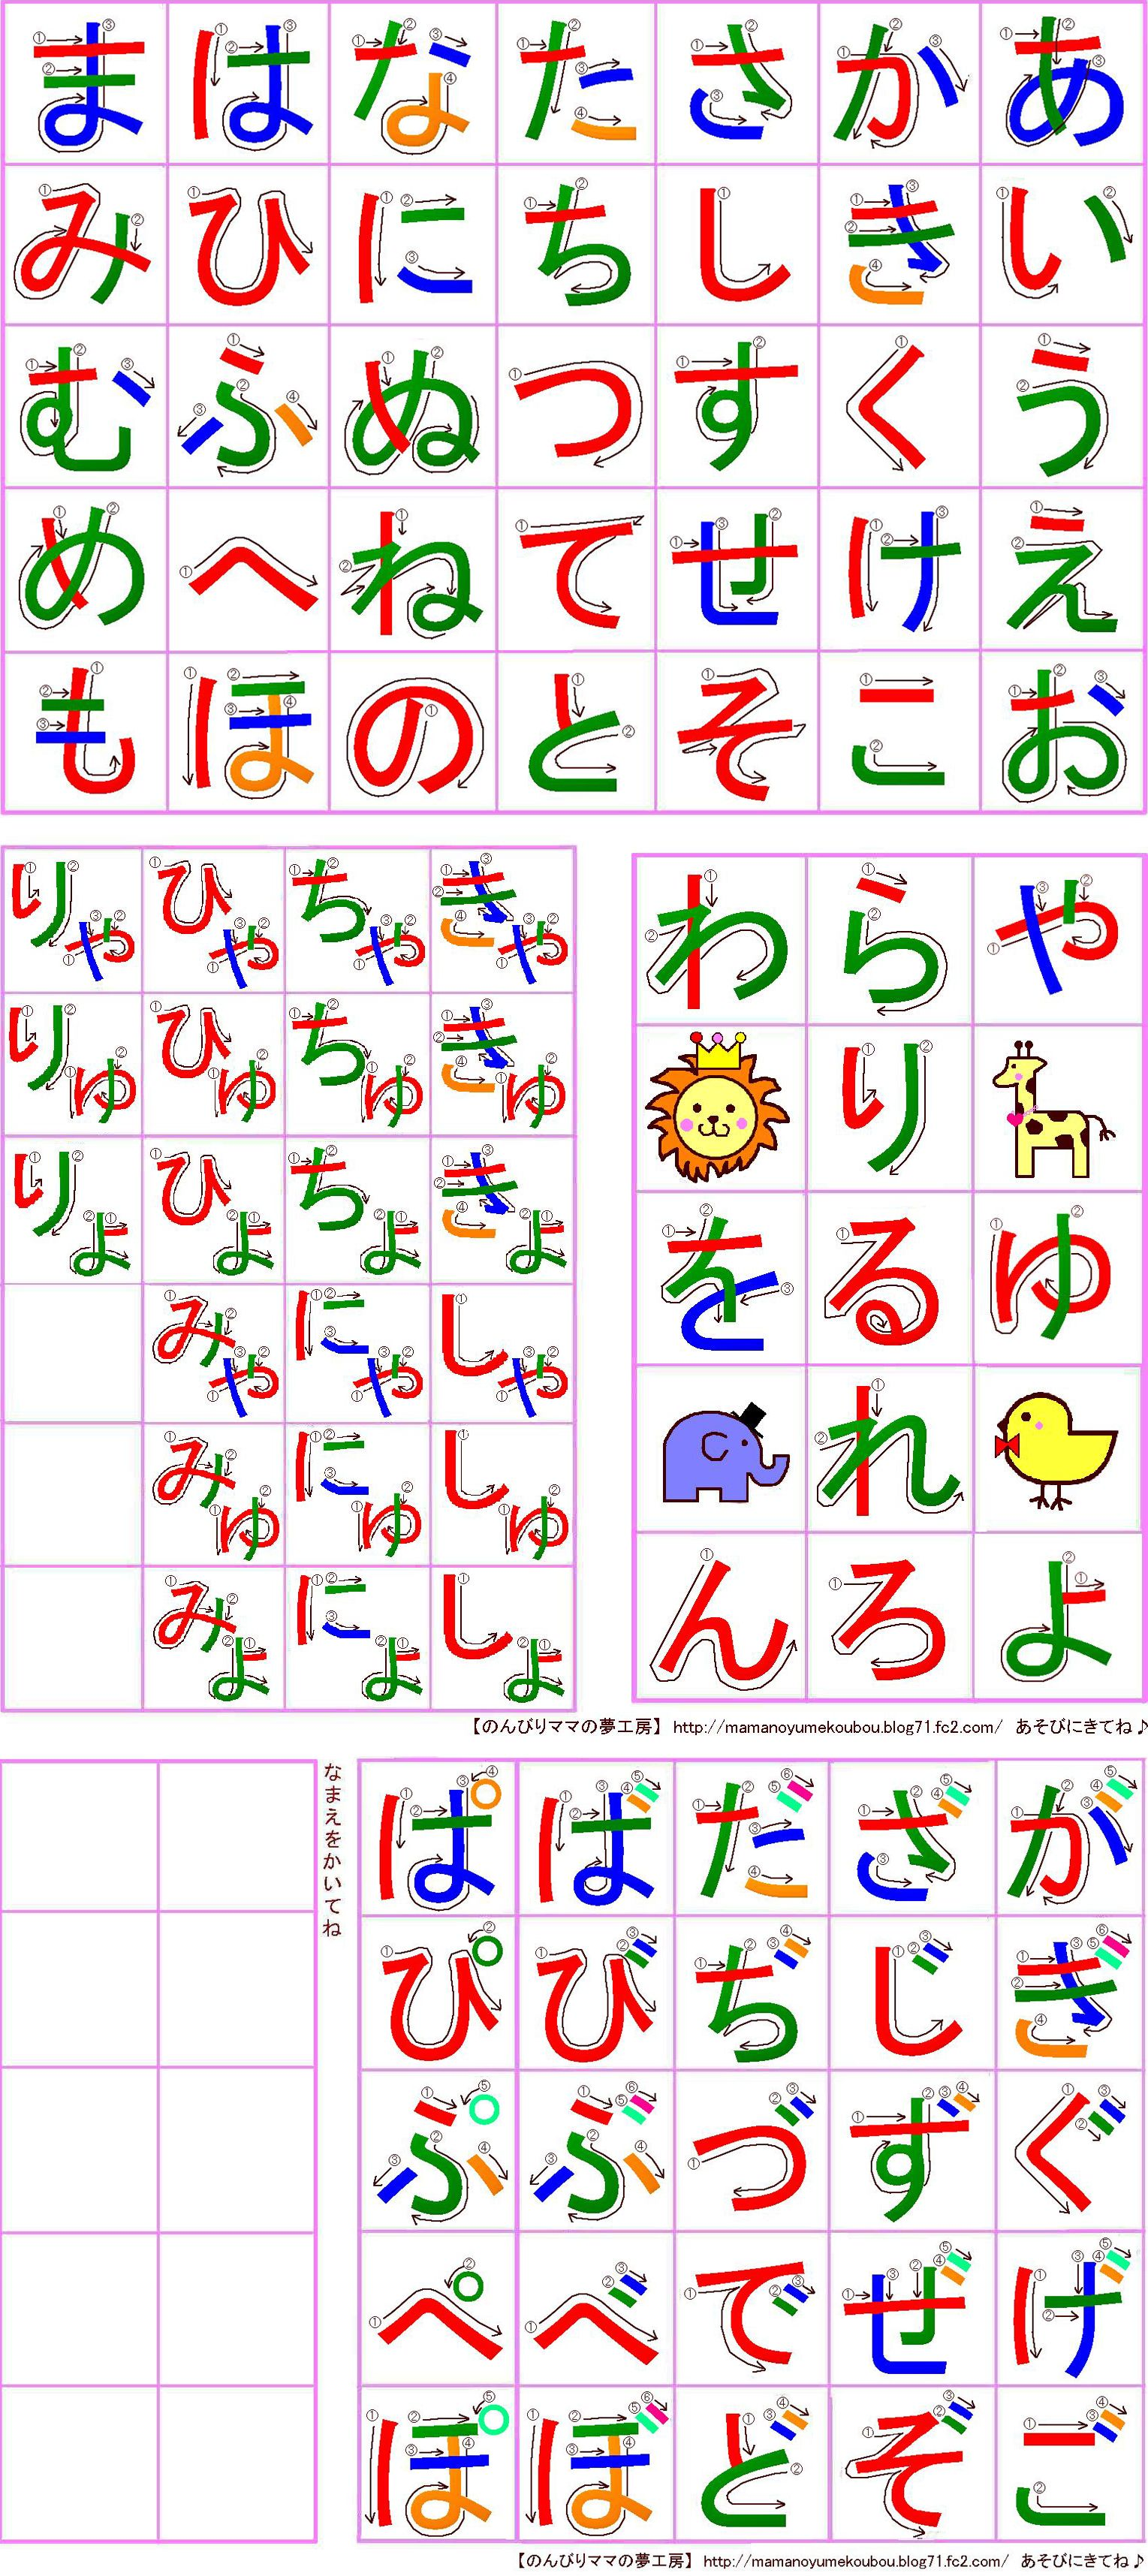 hiragana charts stroke order practice mnemonics and more also rh pinterest